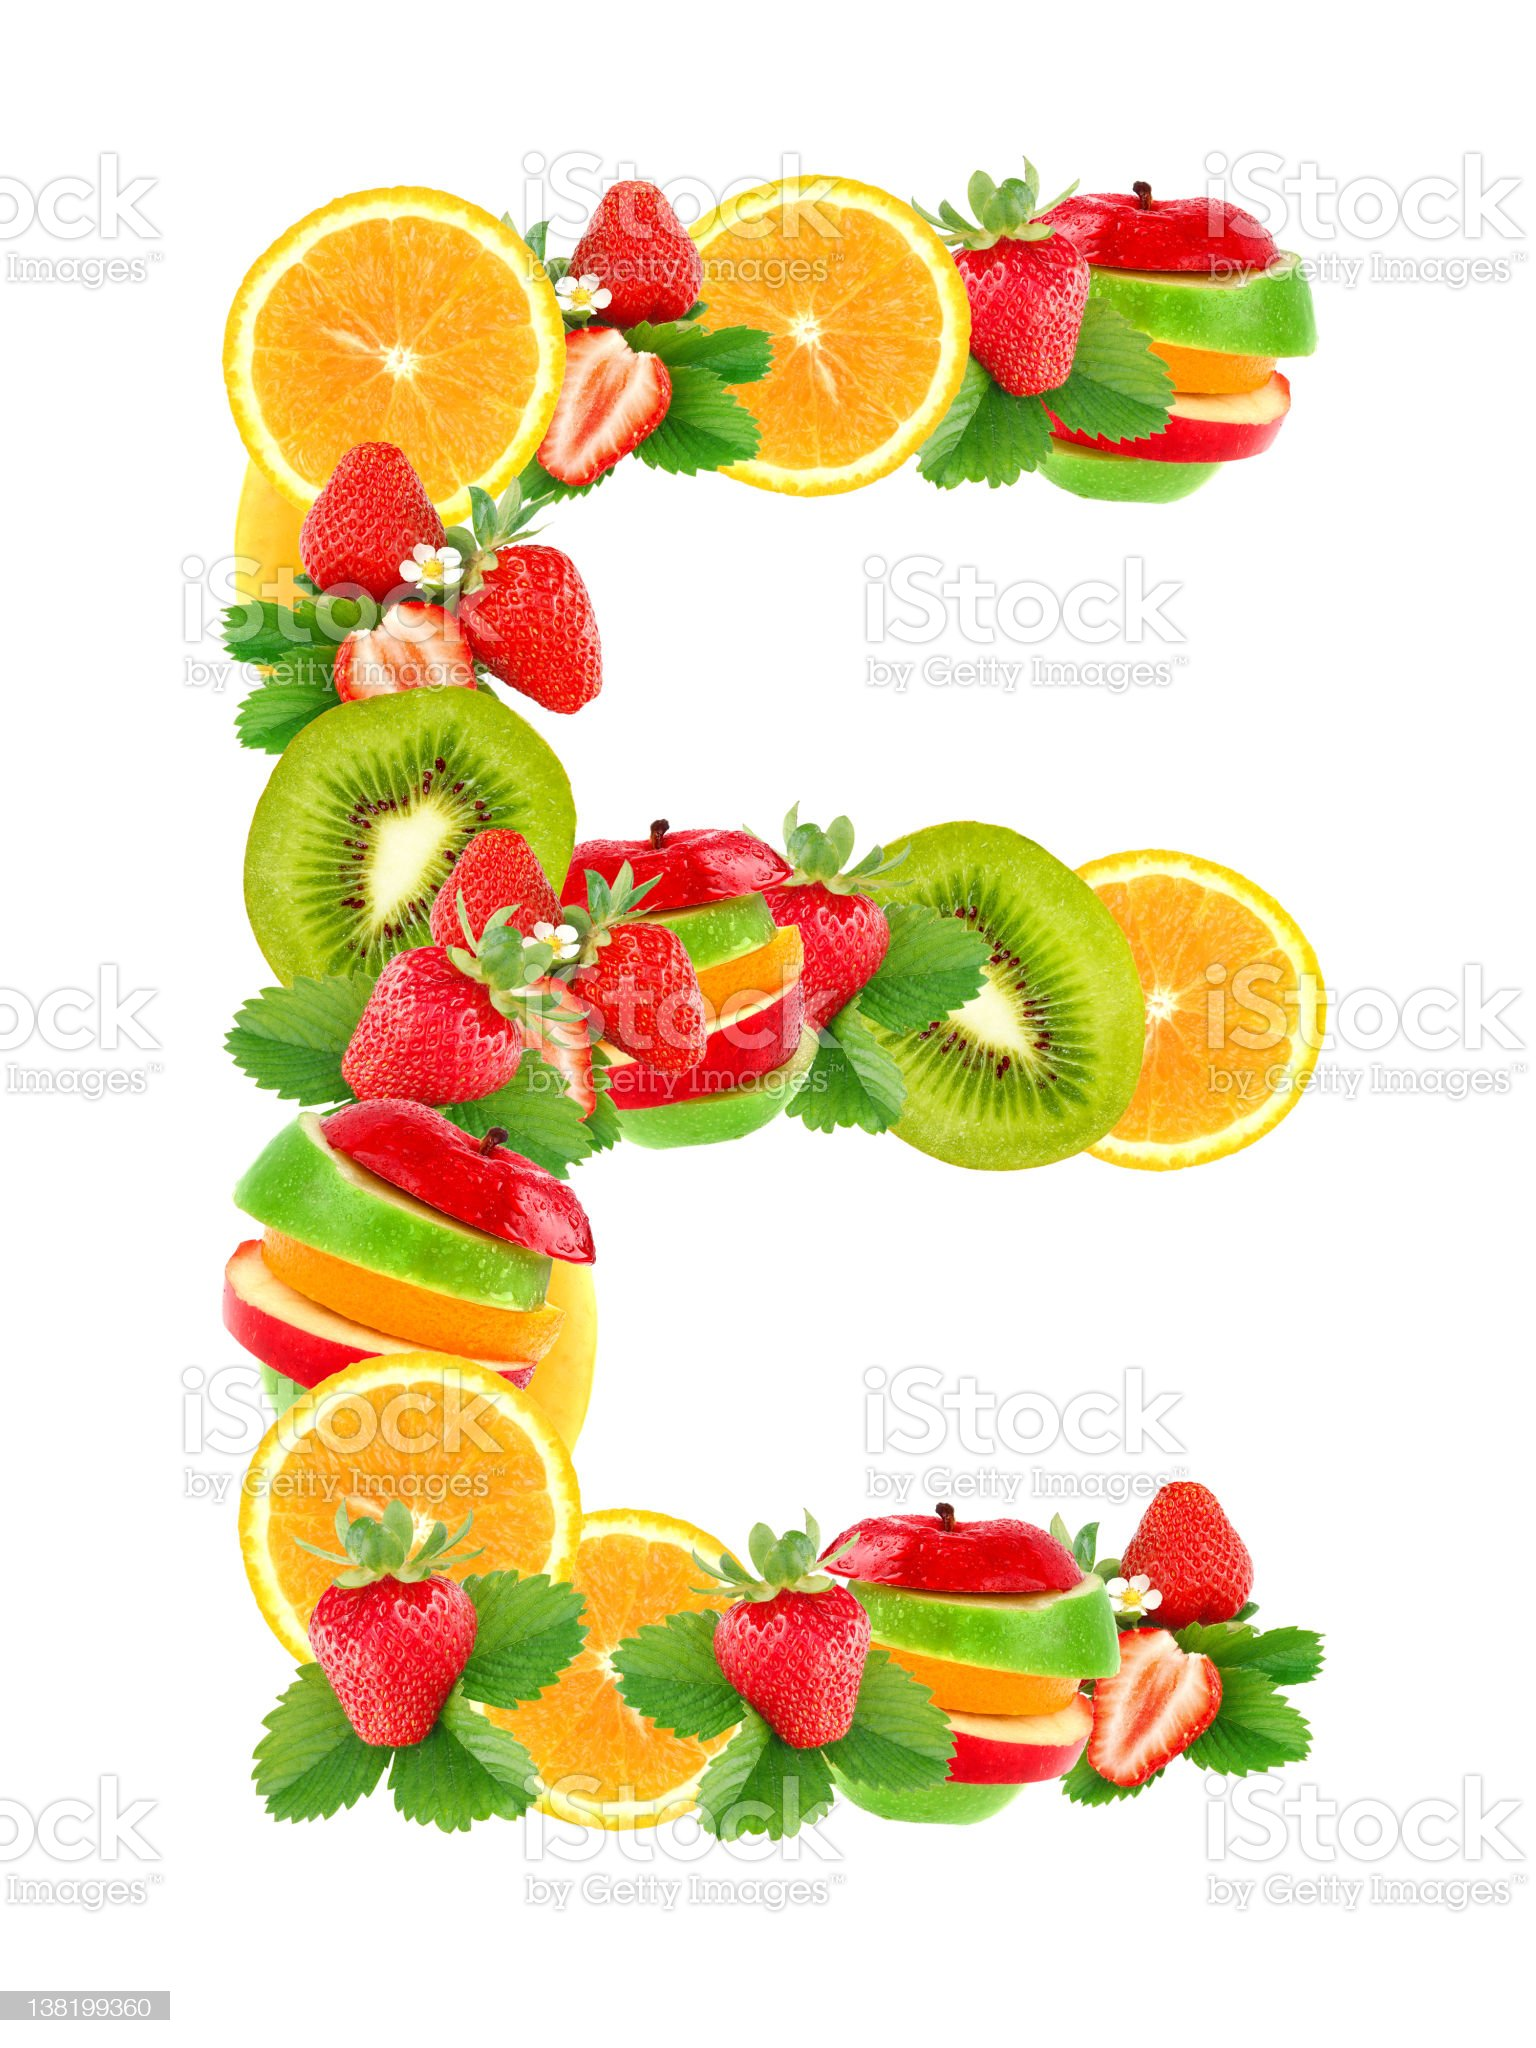 Letter E with fruit royalty-free stock photo